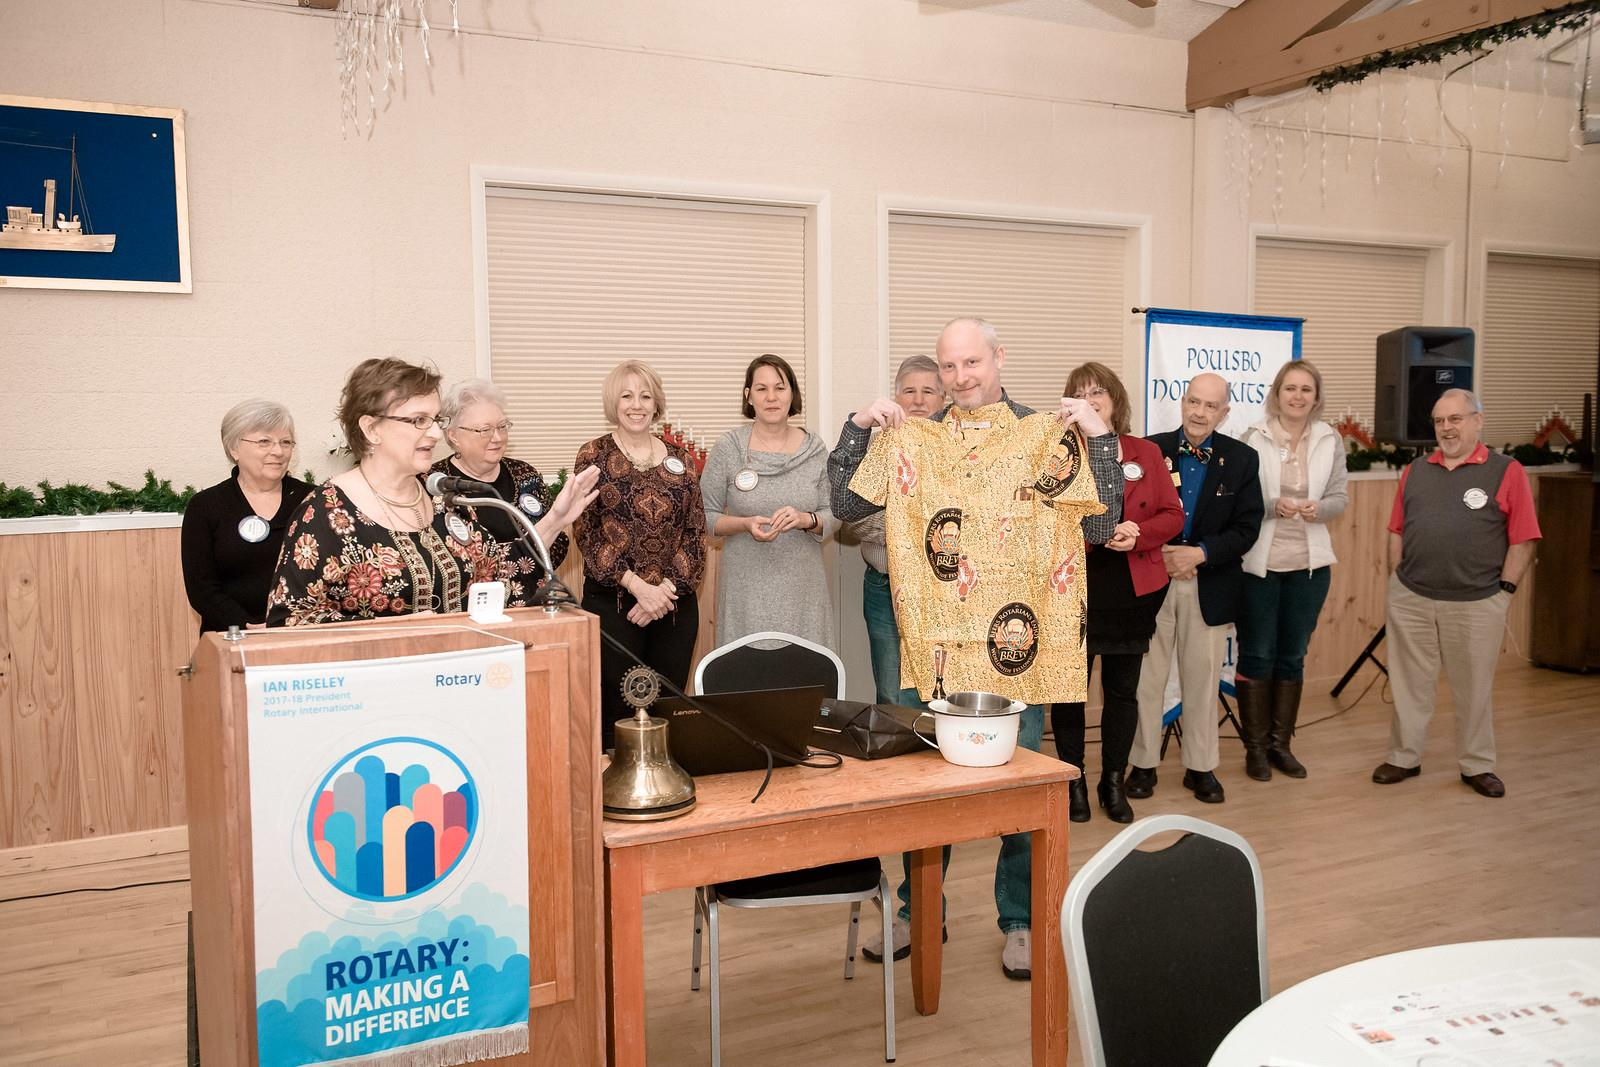 Director Pins presented to Rotary Club Board Members